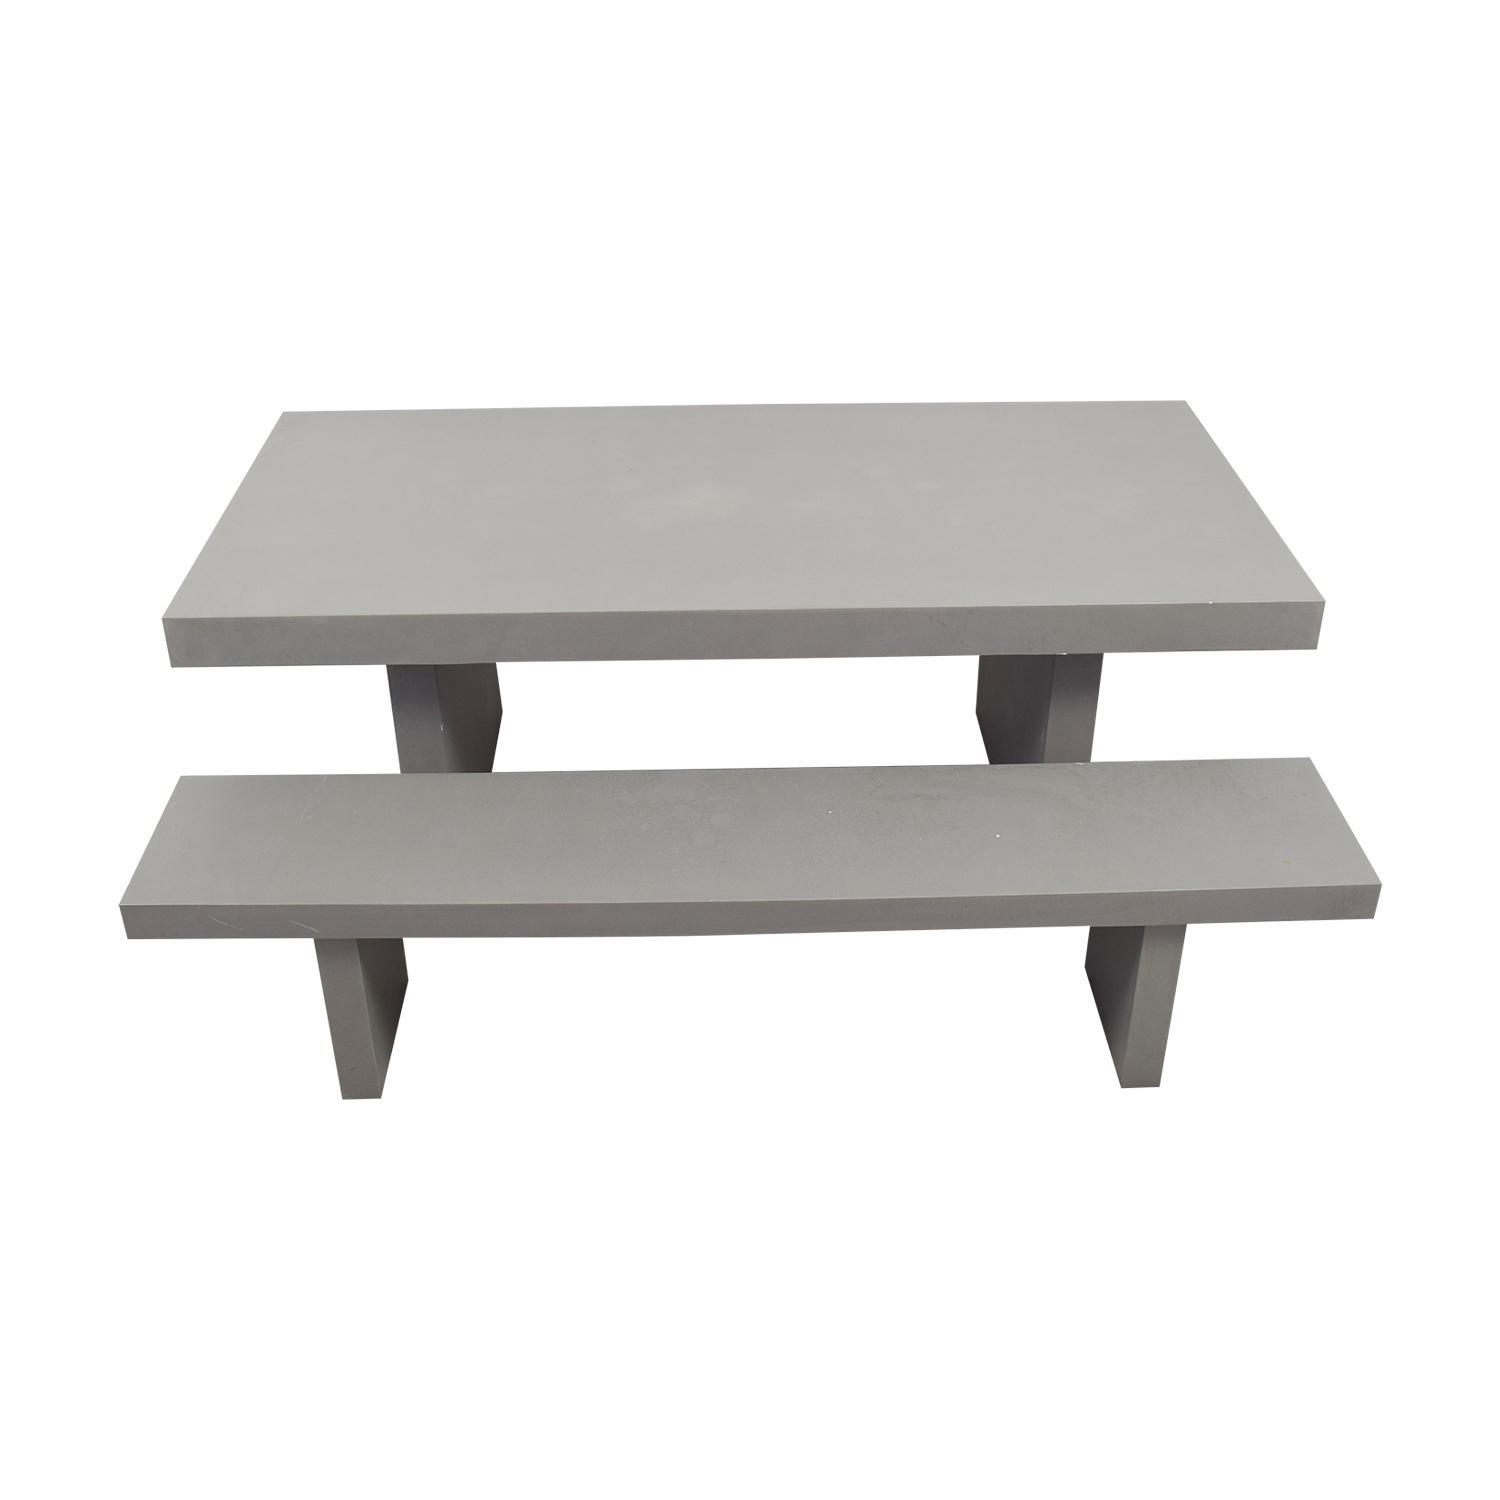 West Elm West Elm Quarry Gray Rectangle Dining Table and Benches Sofas